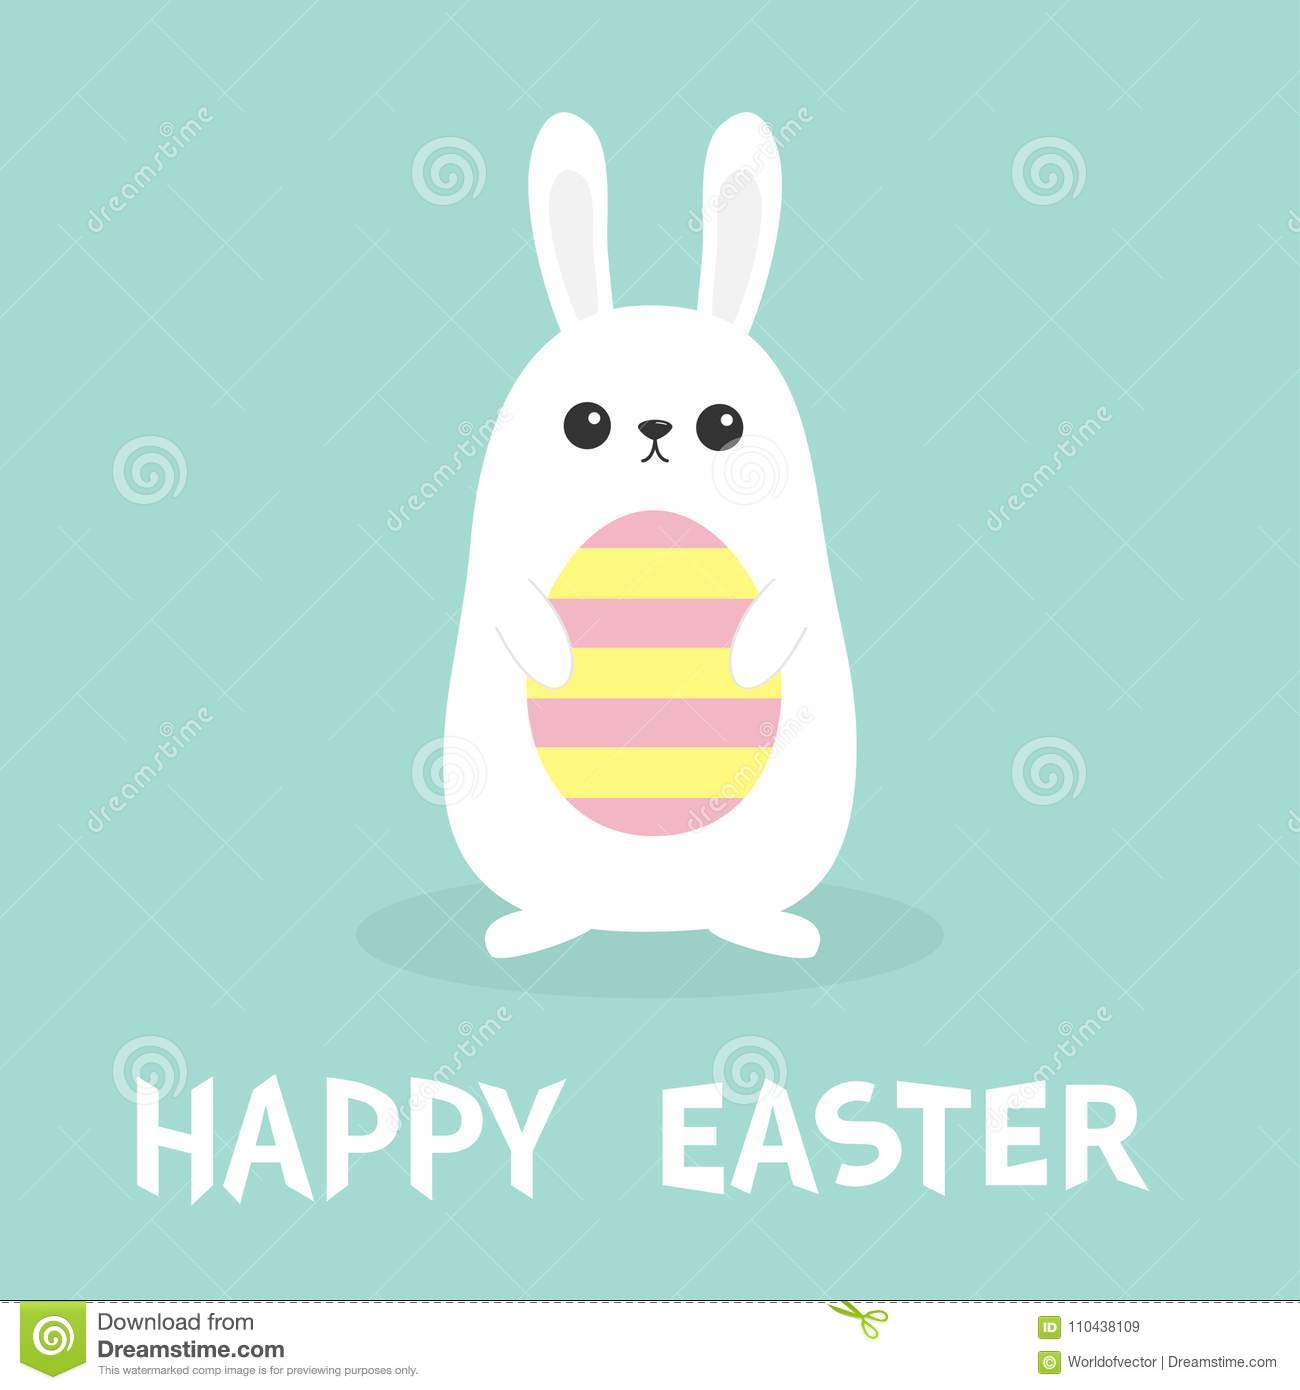 Happy easter white bunny rabbit holding painted pattern egg funny happy easter white bunny rabbit holding painted pattern egg funny head face big ears cute kawaii cartoon character baby greeting card blue pastel color m4hsunfo